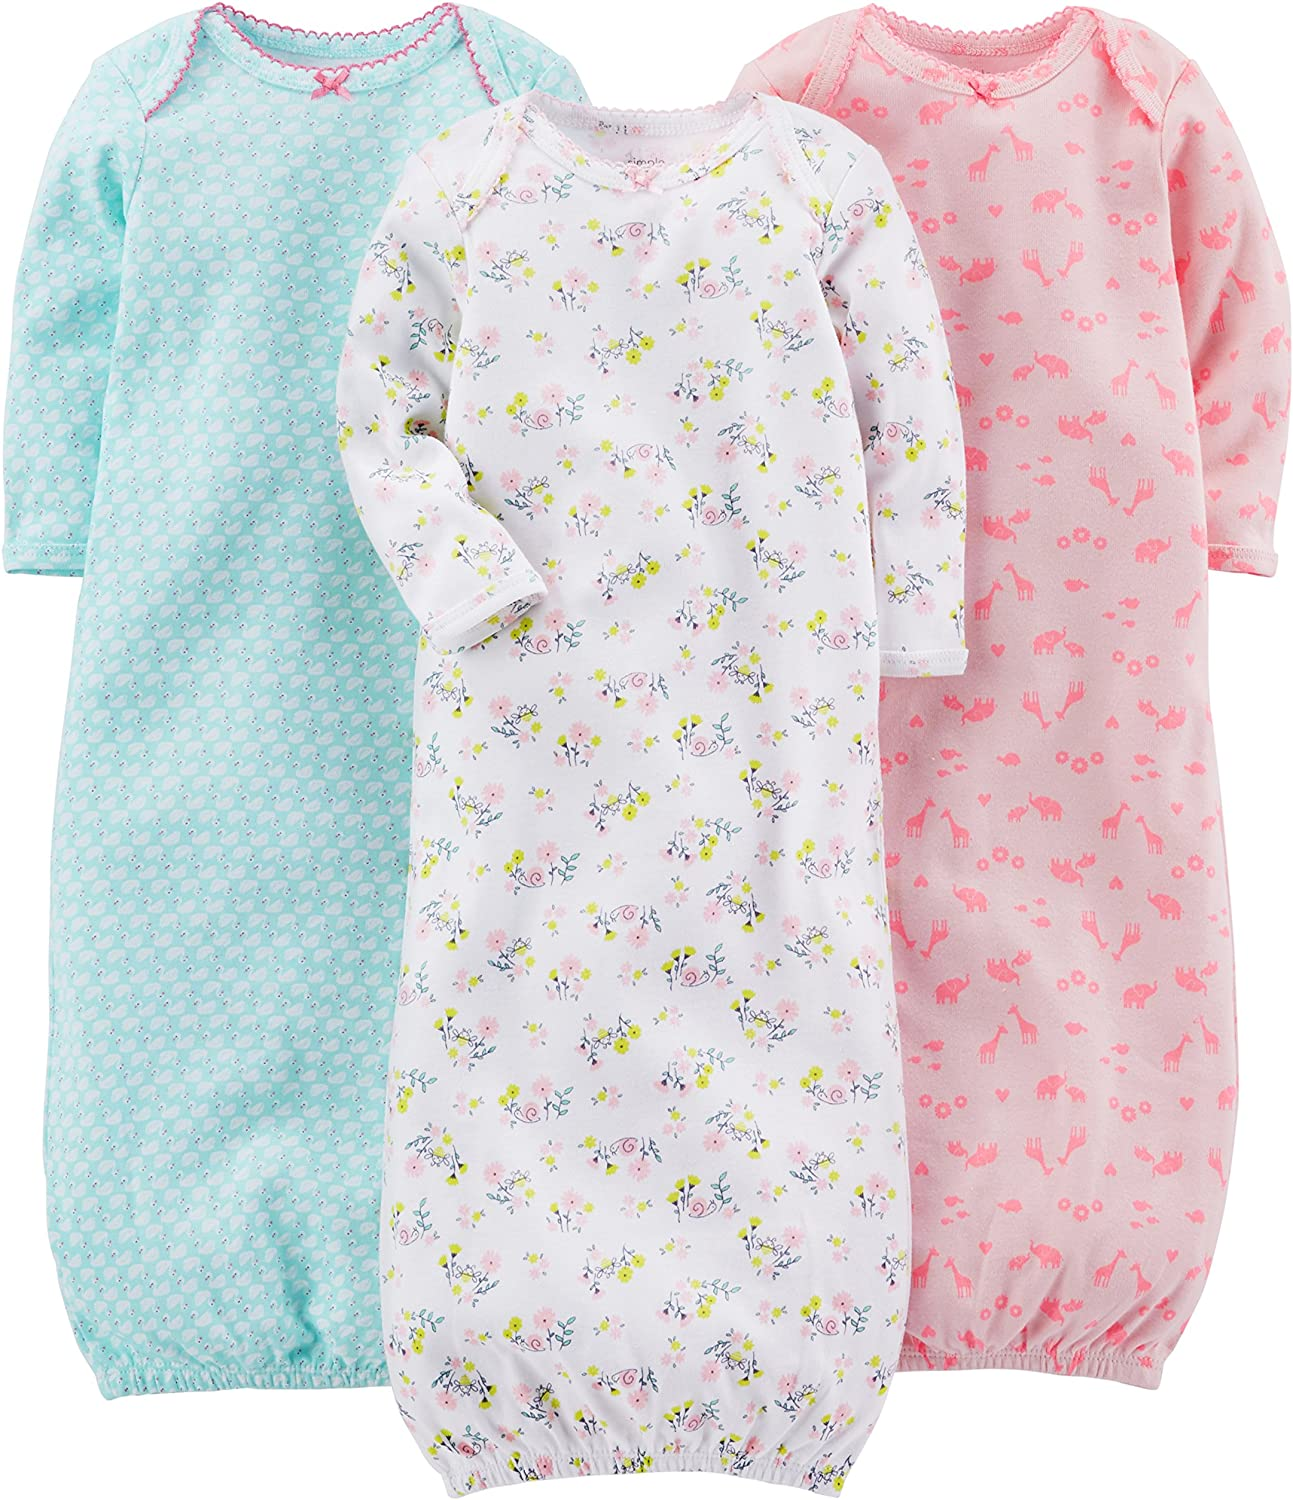 Simple Joys by Carter's Baby Girls' 3-Pack Cotton Sleeper Gown: Clothing